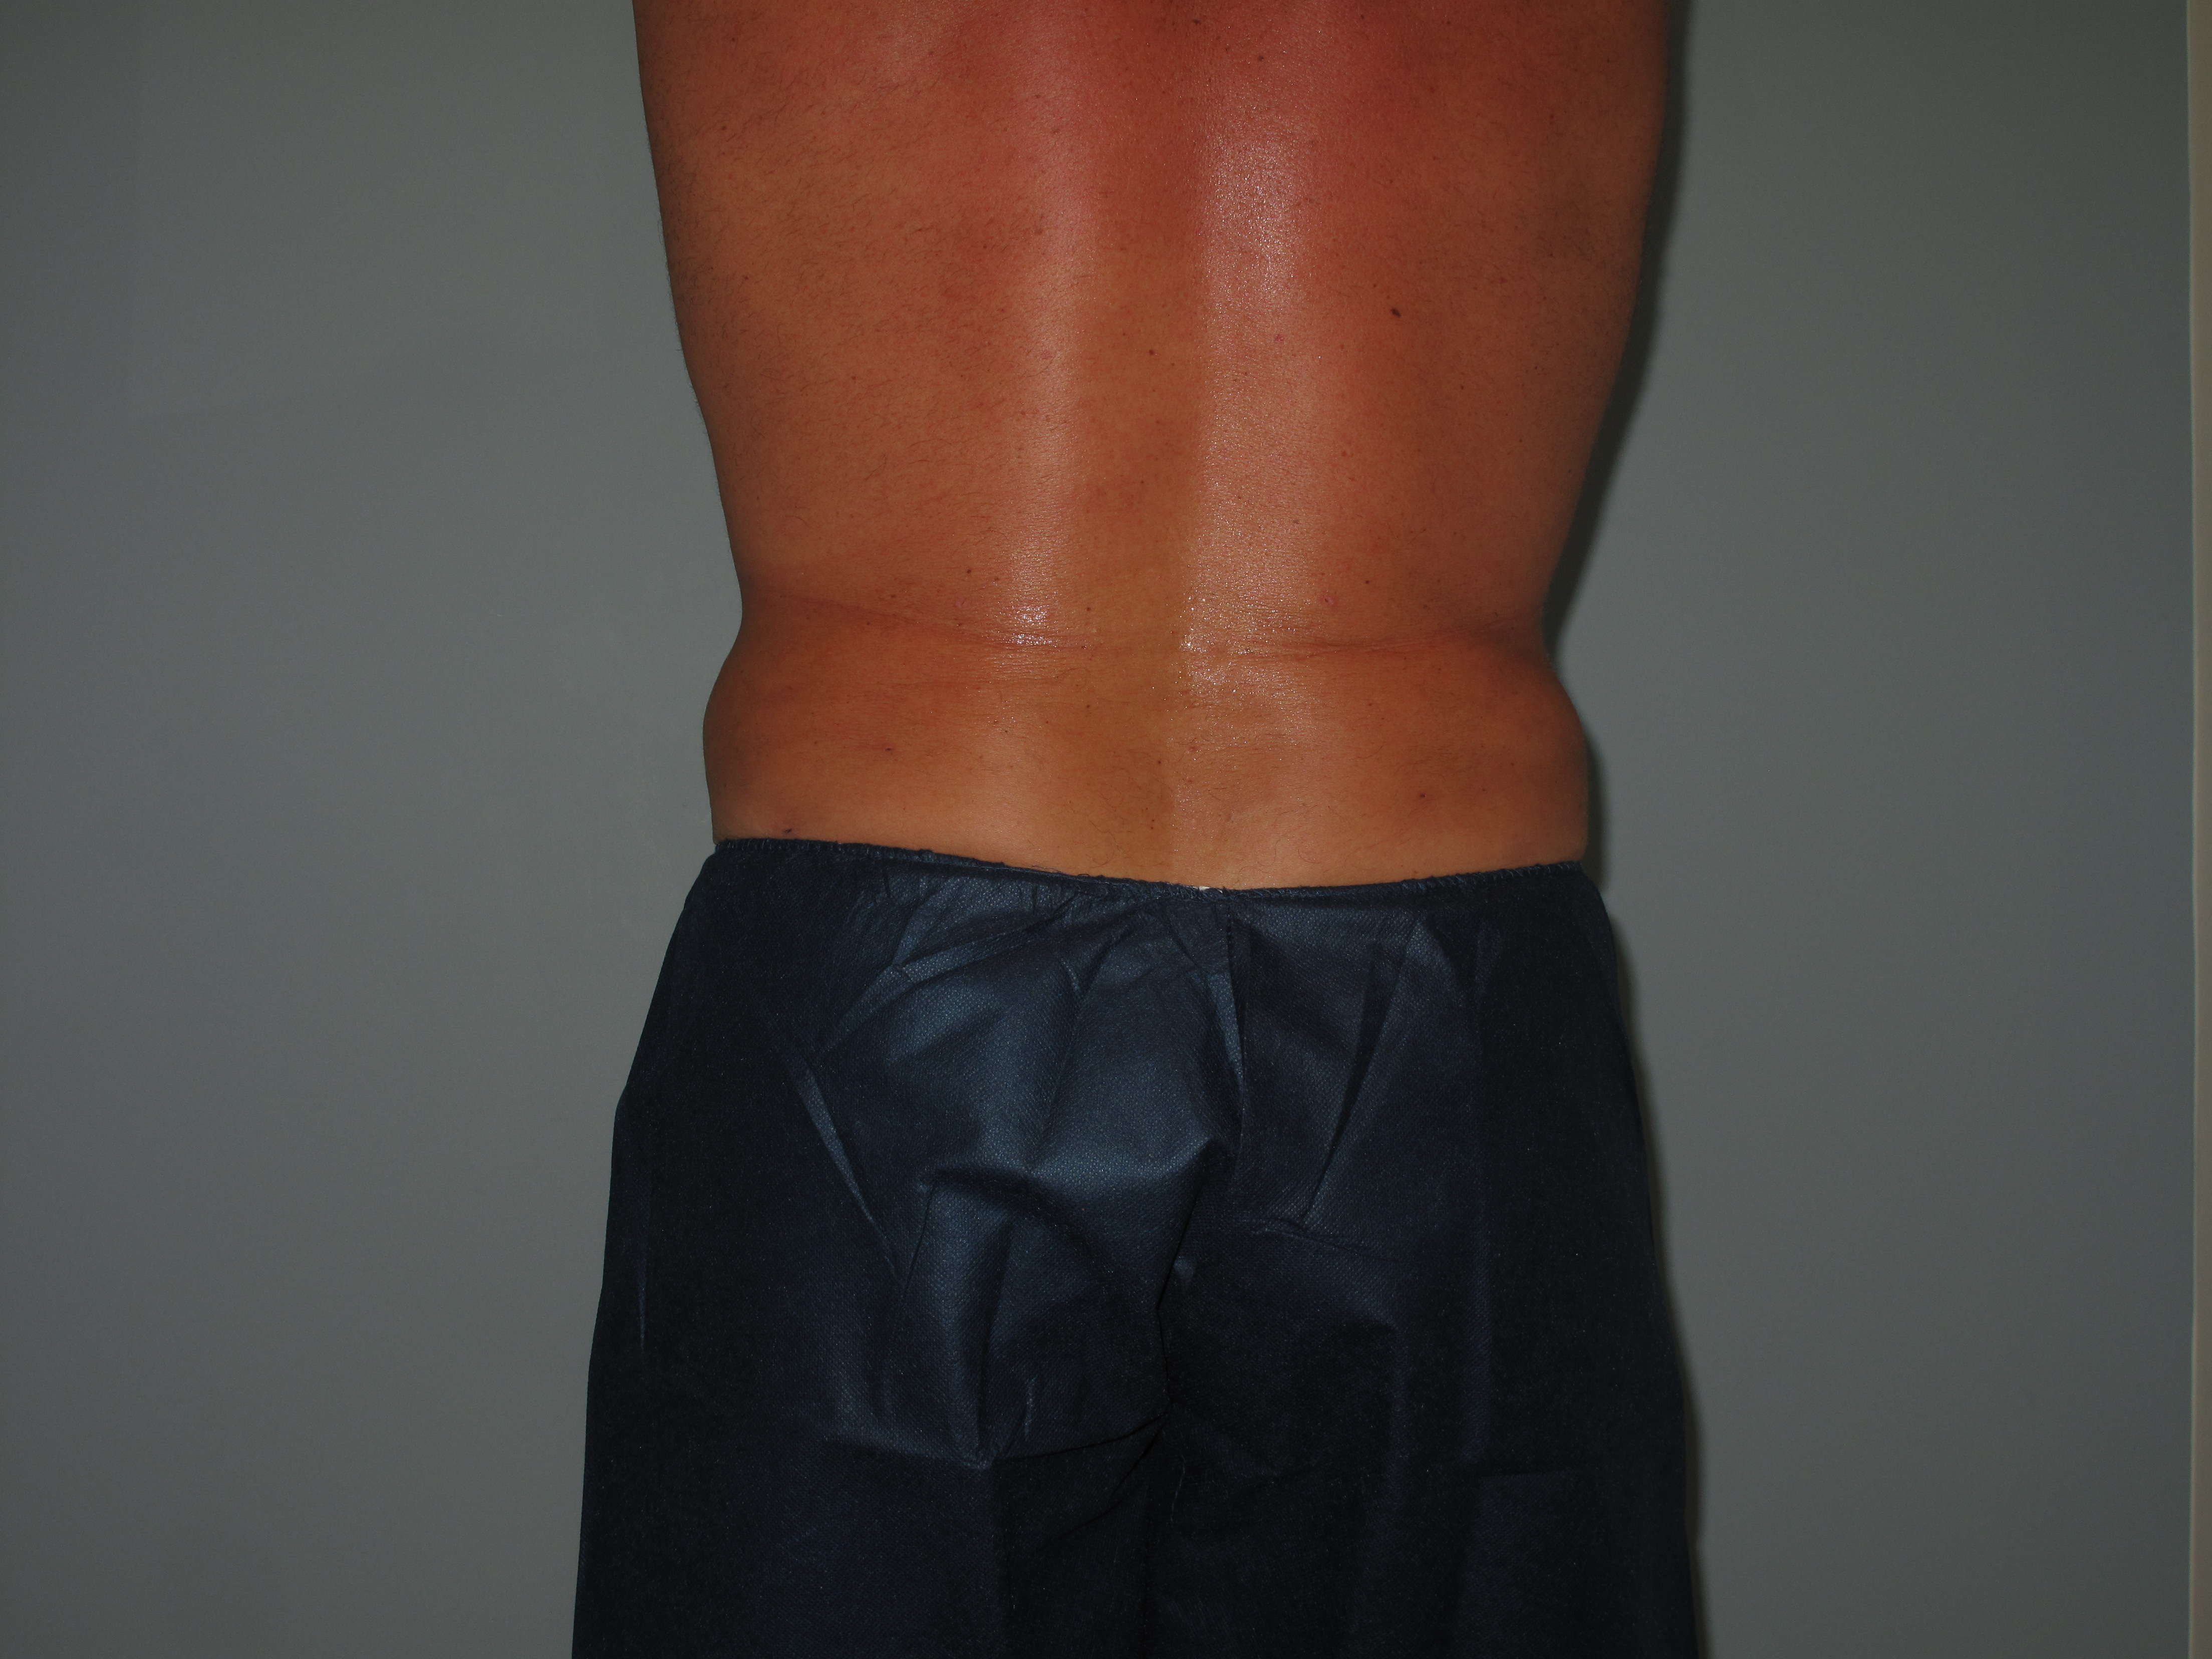 Male Flanks After  - Liposuction - Flanks